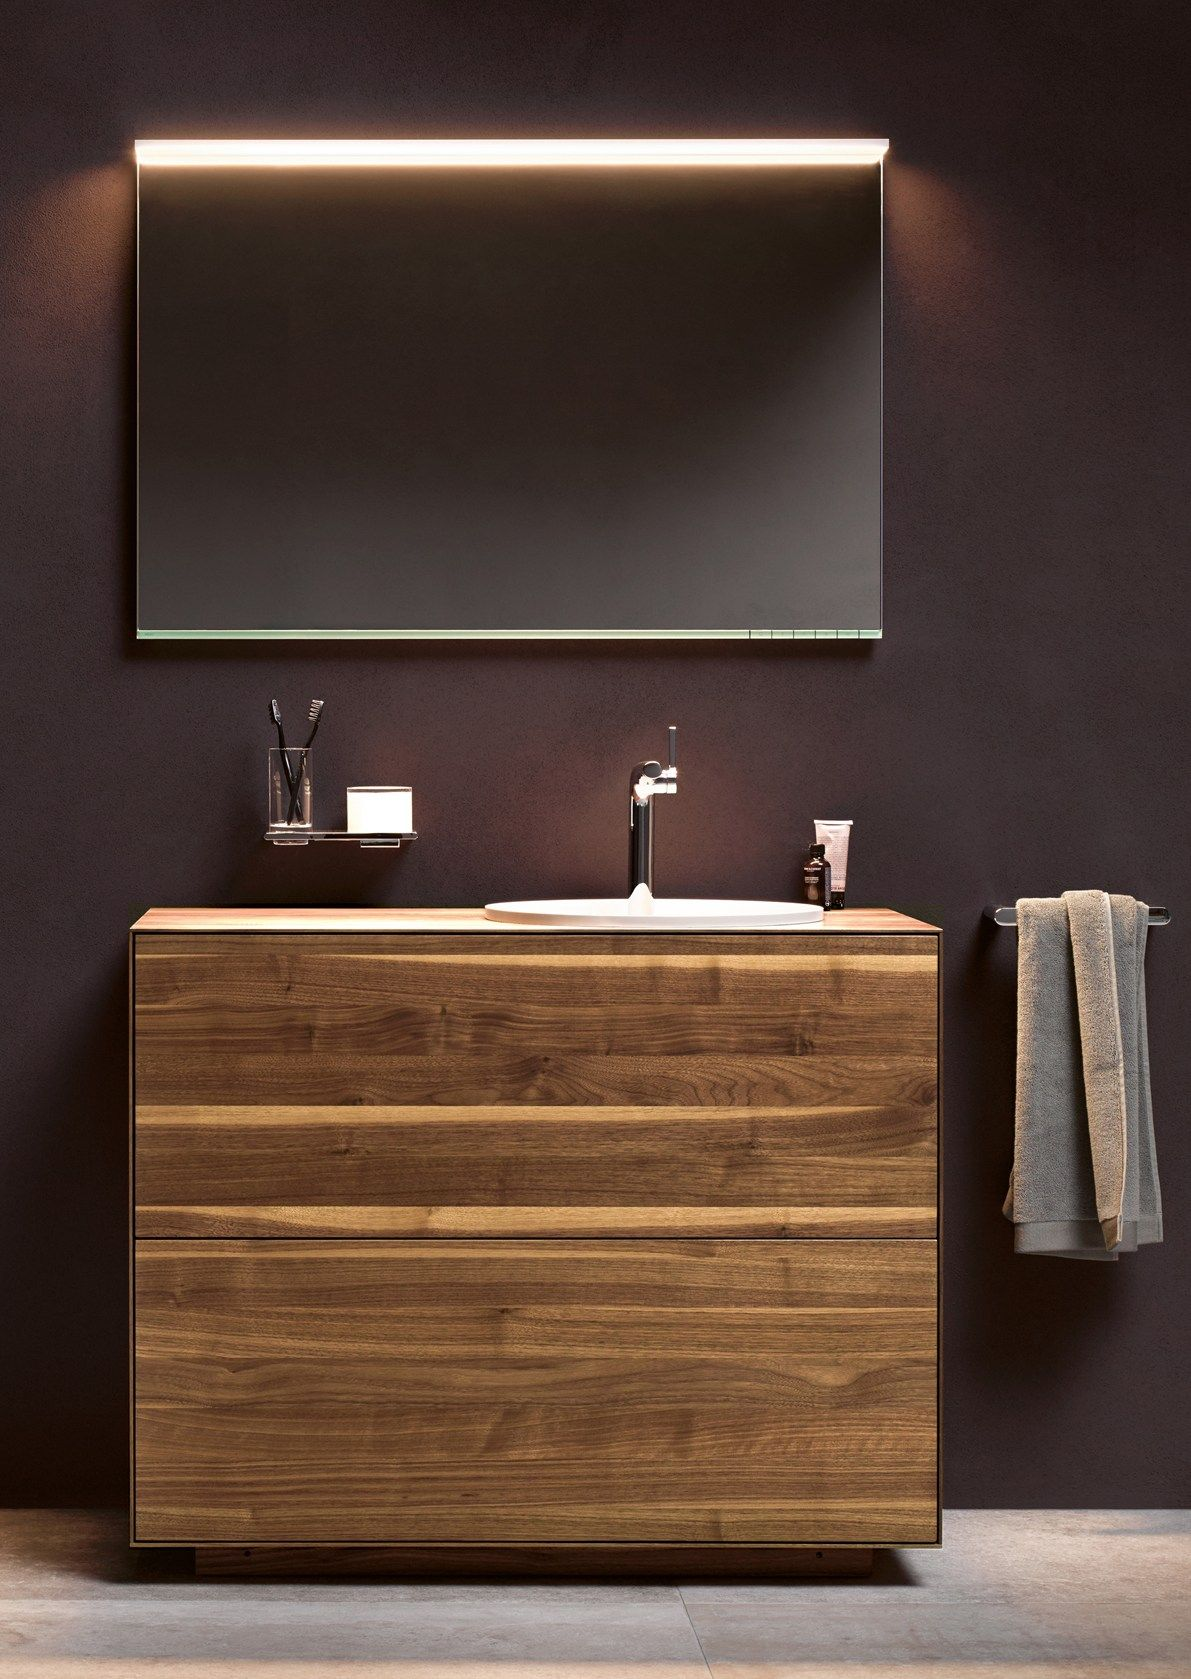 keuco + team 7 edition lignatur, the new bathroom furnishing, Badezimmer